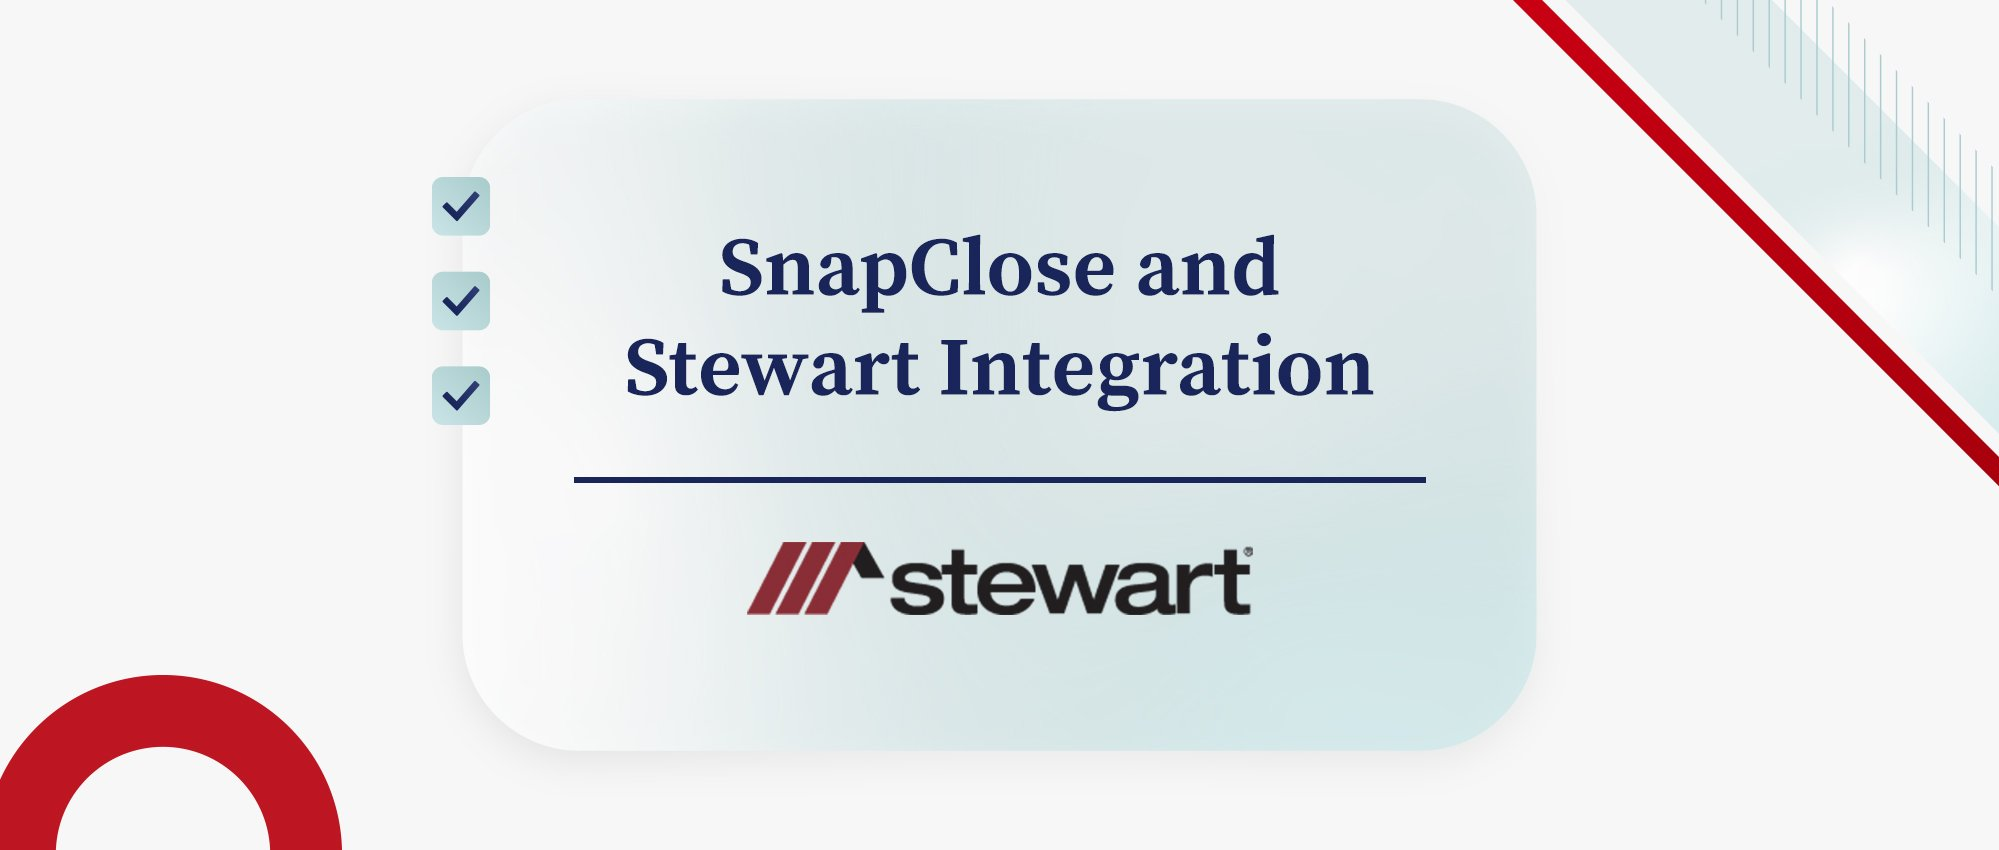 SnapClose and Stewart Integration